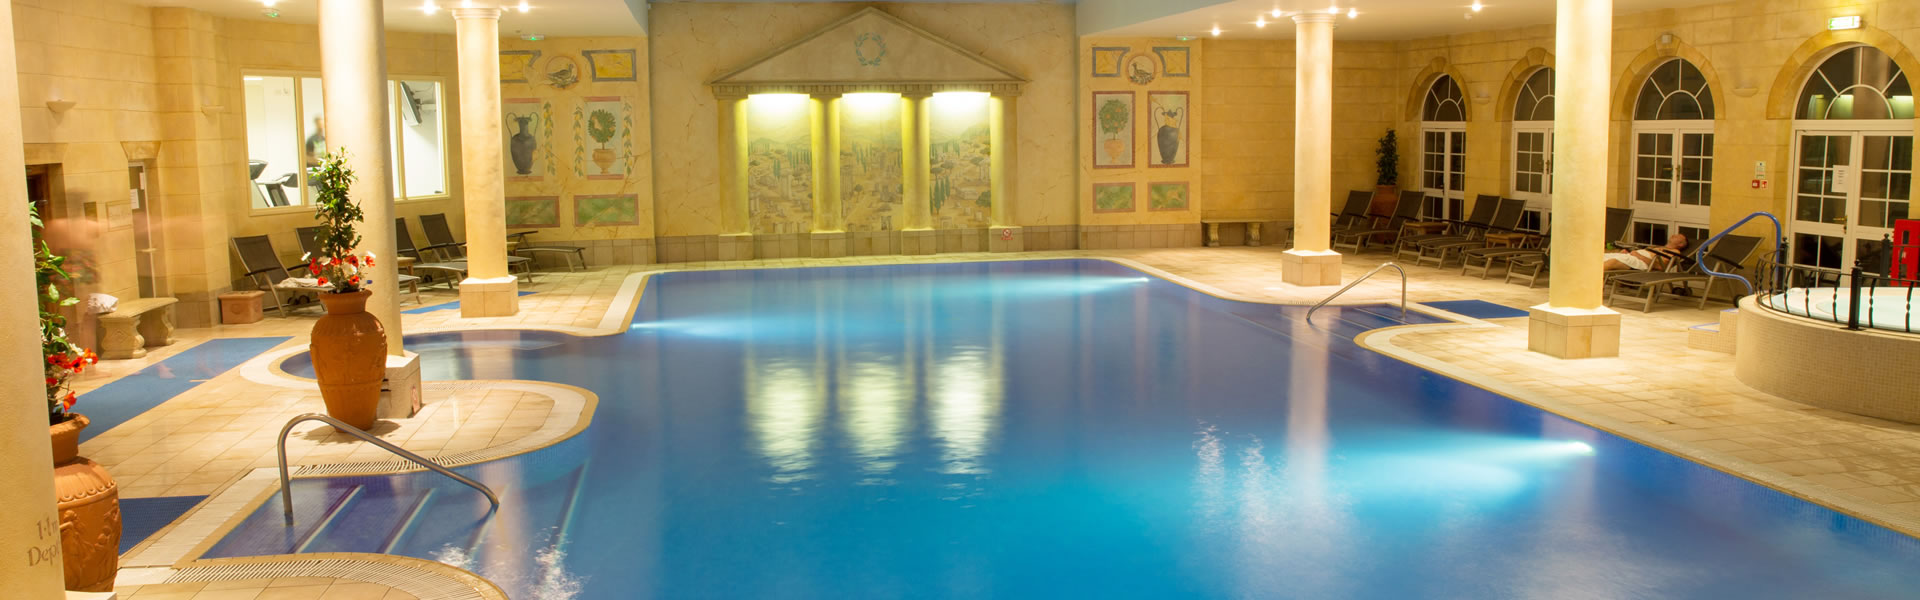 Sketchley-Grange-Leisure-Spa-Pool-1_banner